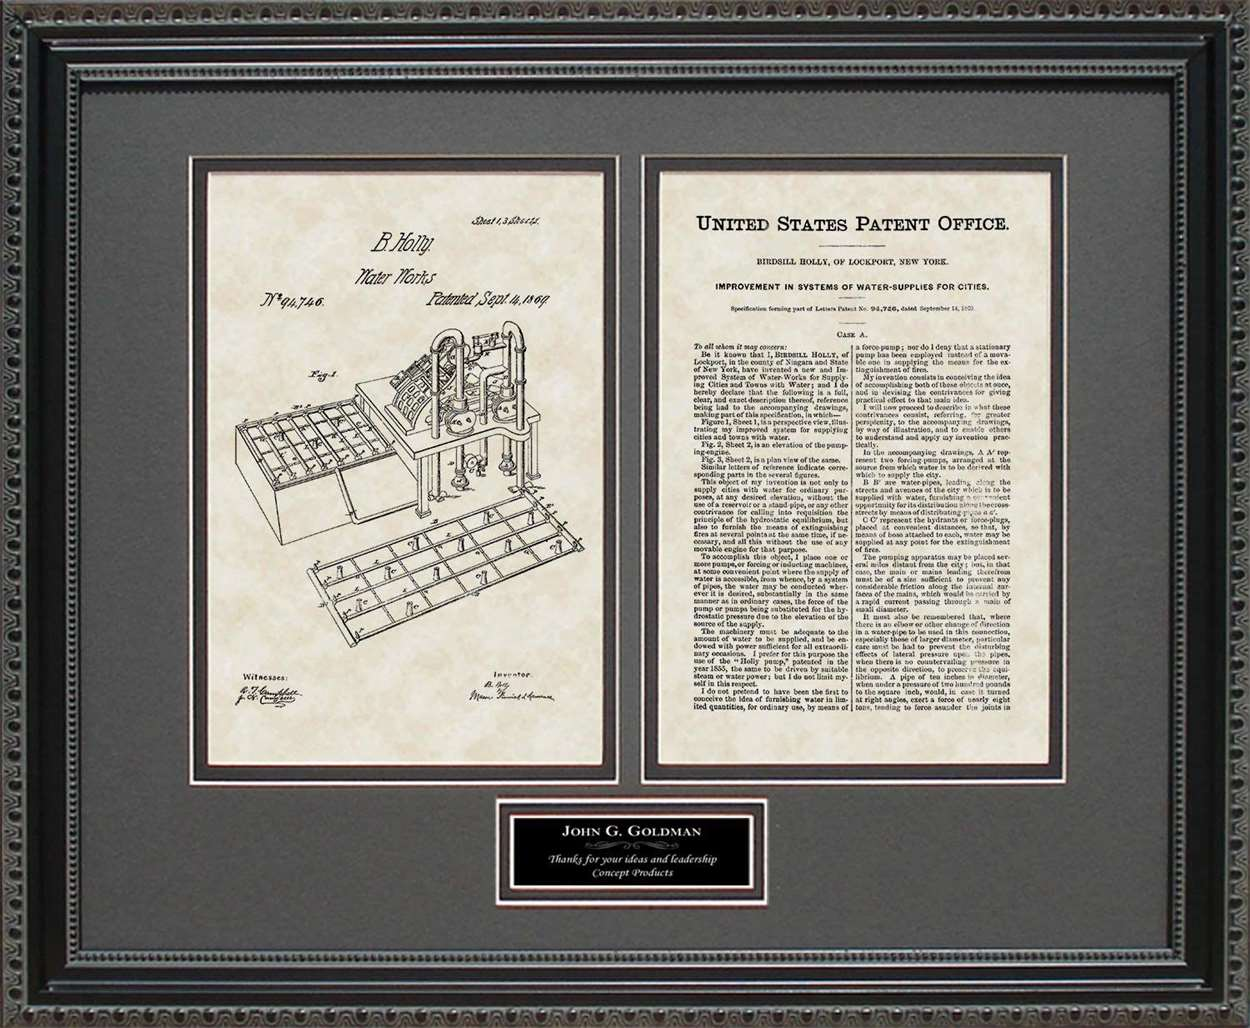 Personalized Fire Hydrant System Patent, Art & Copy, Holly, 1869